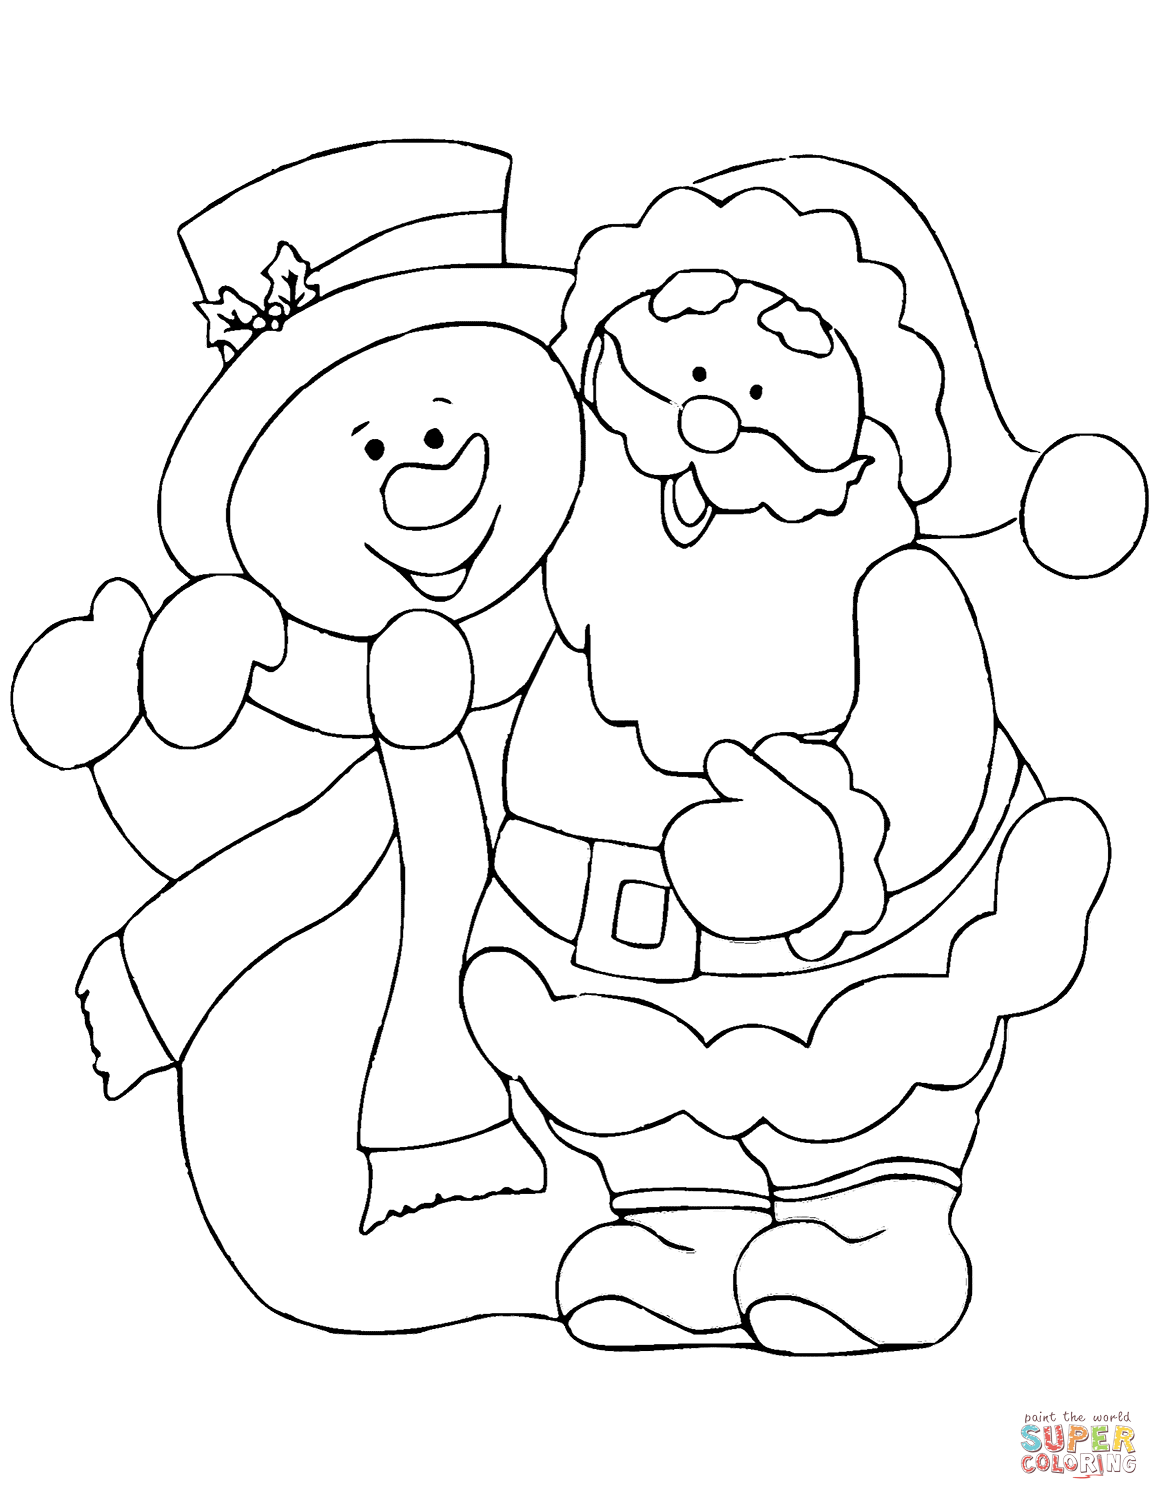 Santa Claus Coloring Pages Online With Snowman Page Free Printable